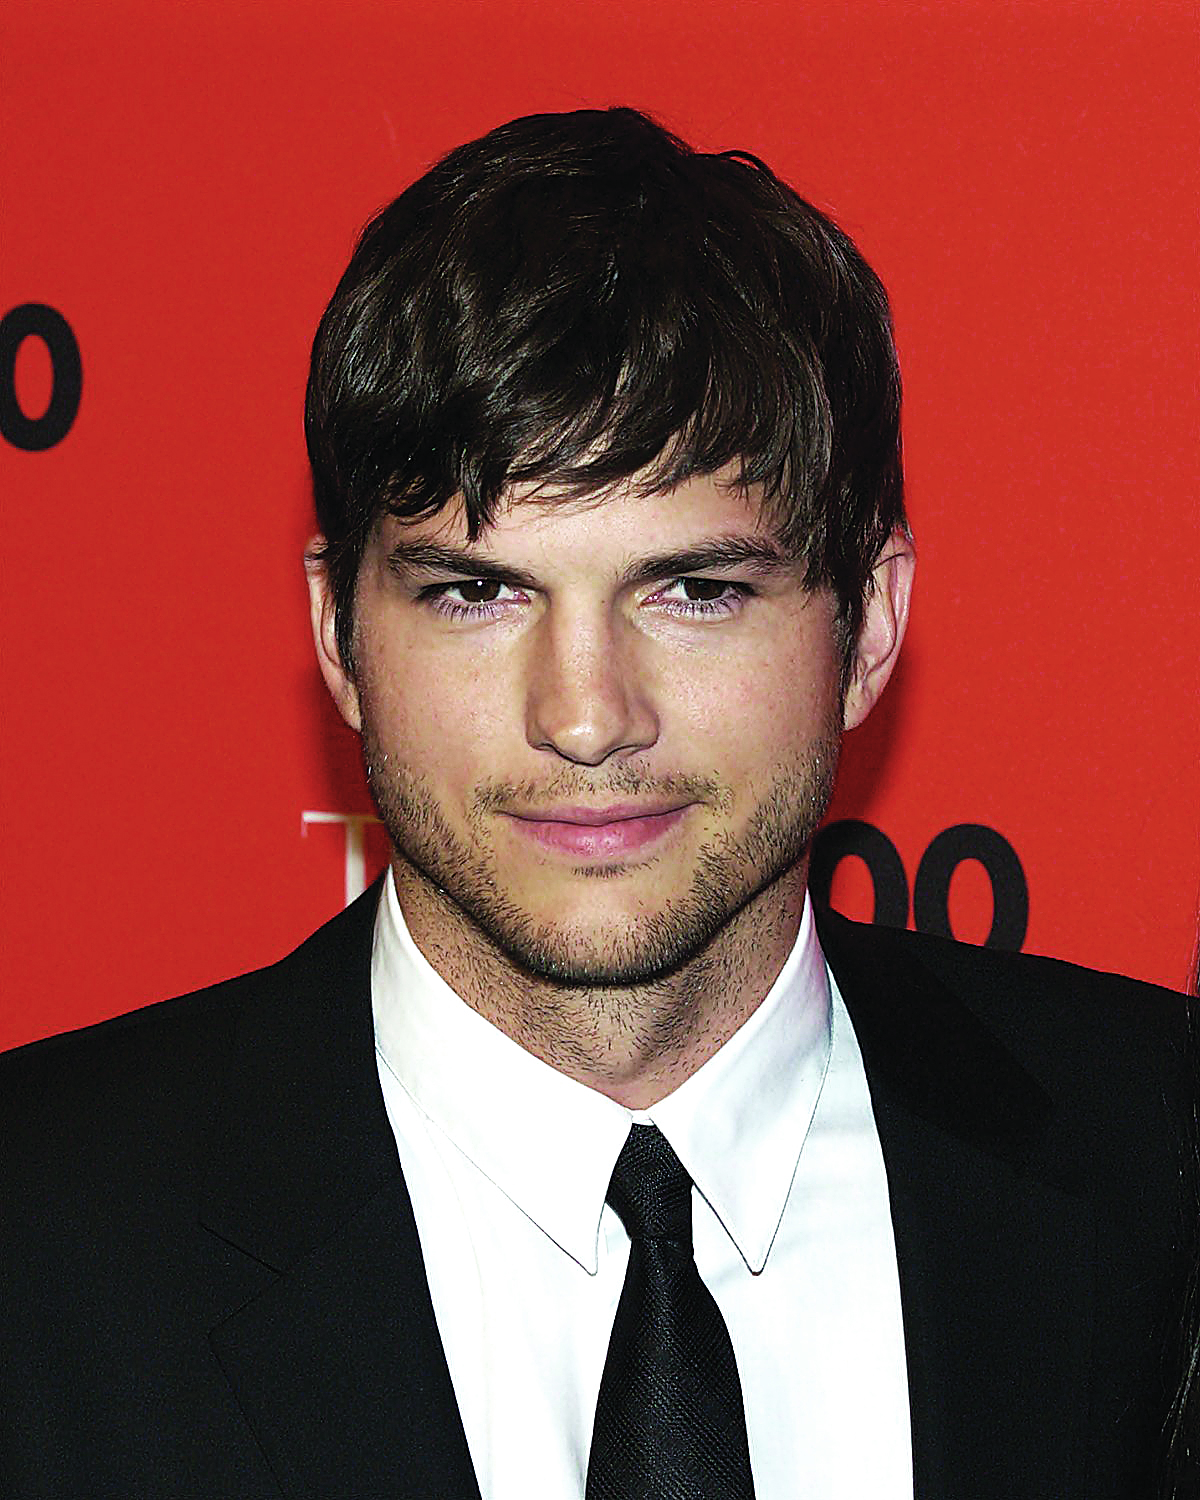 Photo of Ashton Kutcher partilha número de telemóvel